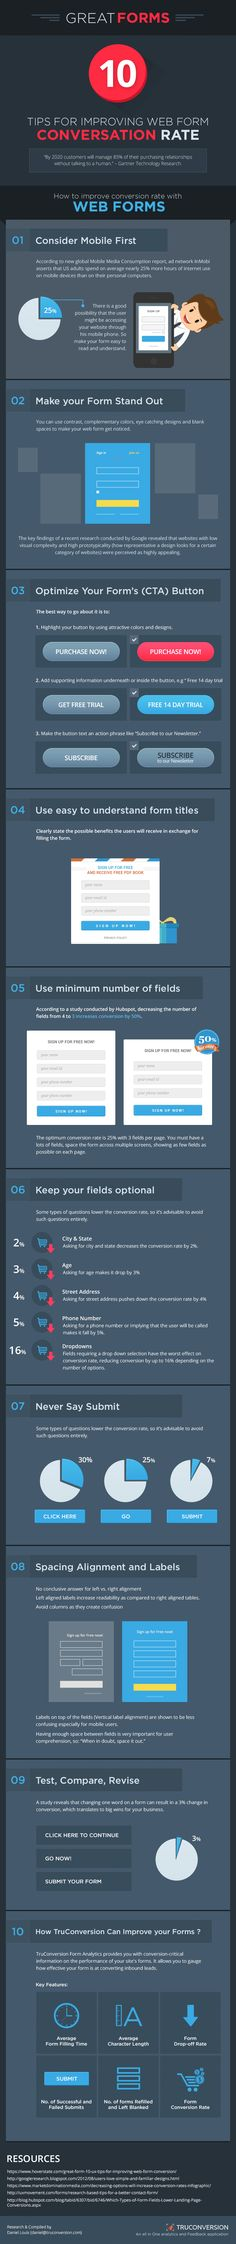 10 Tips to Improve The Conversion Rate Of Your Website Forms